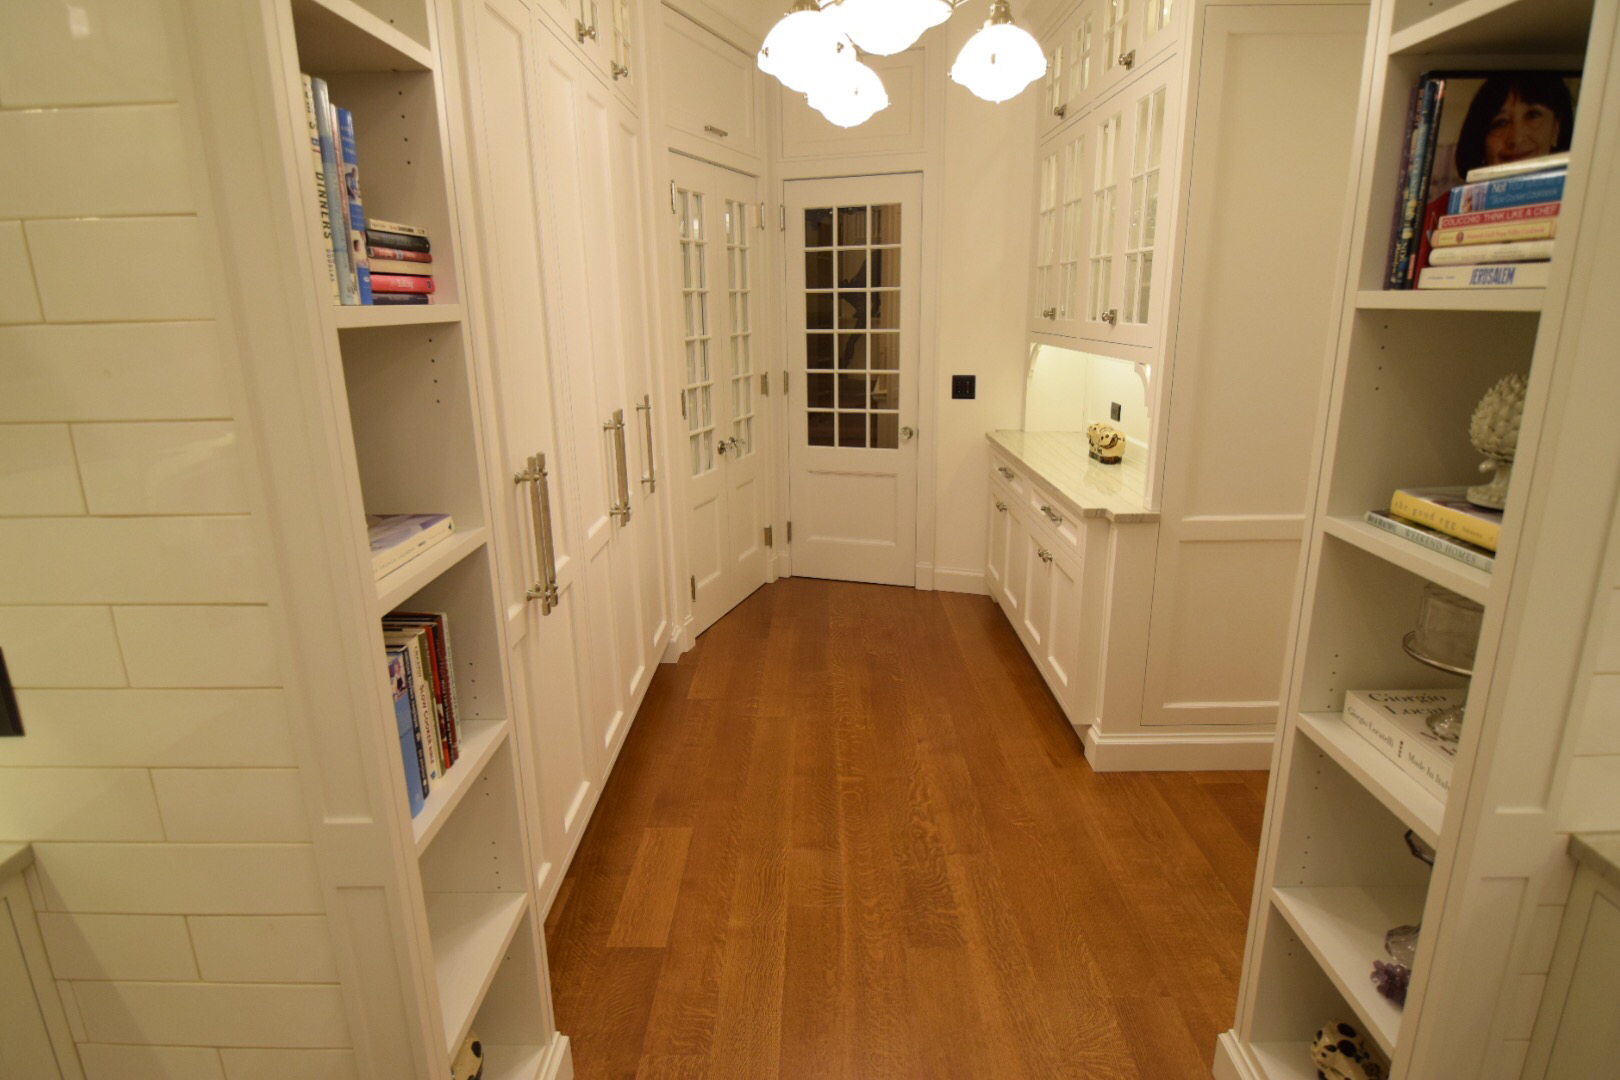 custom-traditional-solid-cherry-kitchen-with-face-frame-inset-cabinets-and-1890s-style-custom-architectural-doors.jpg